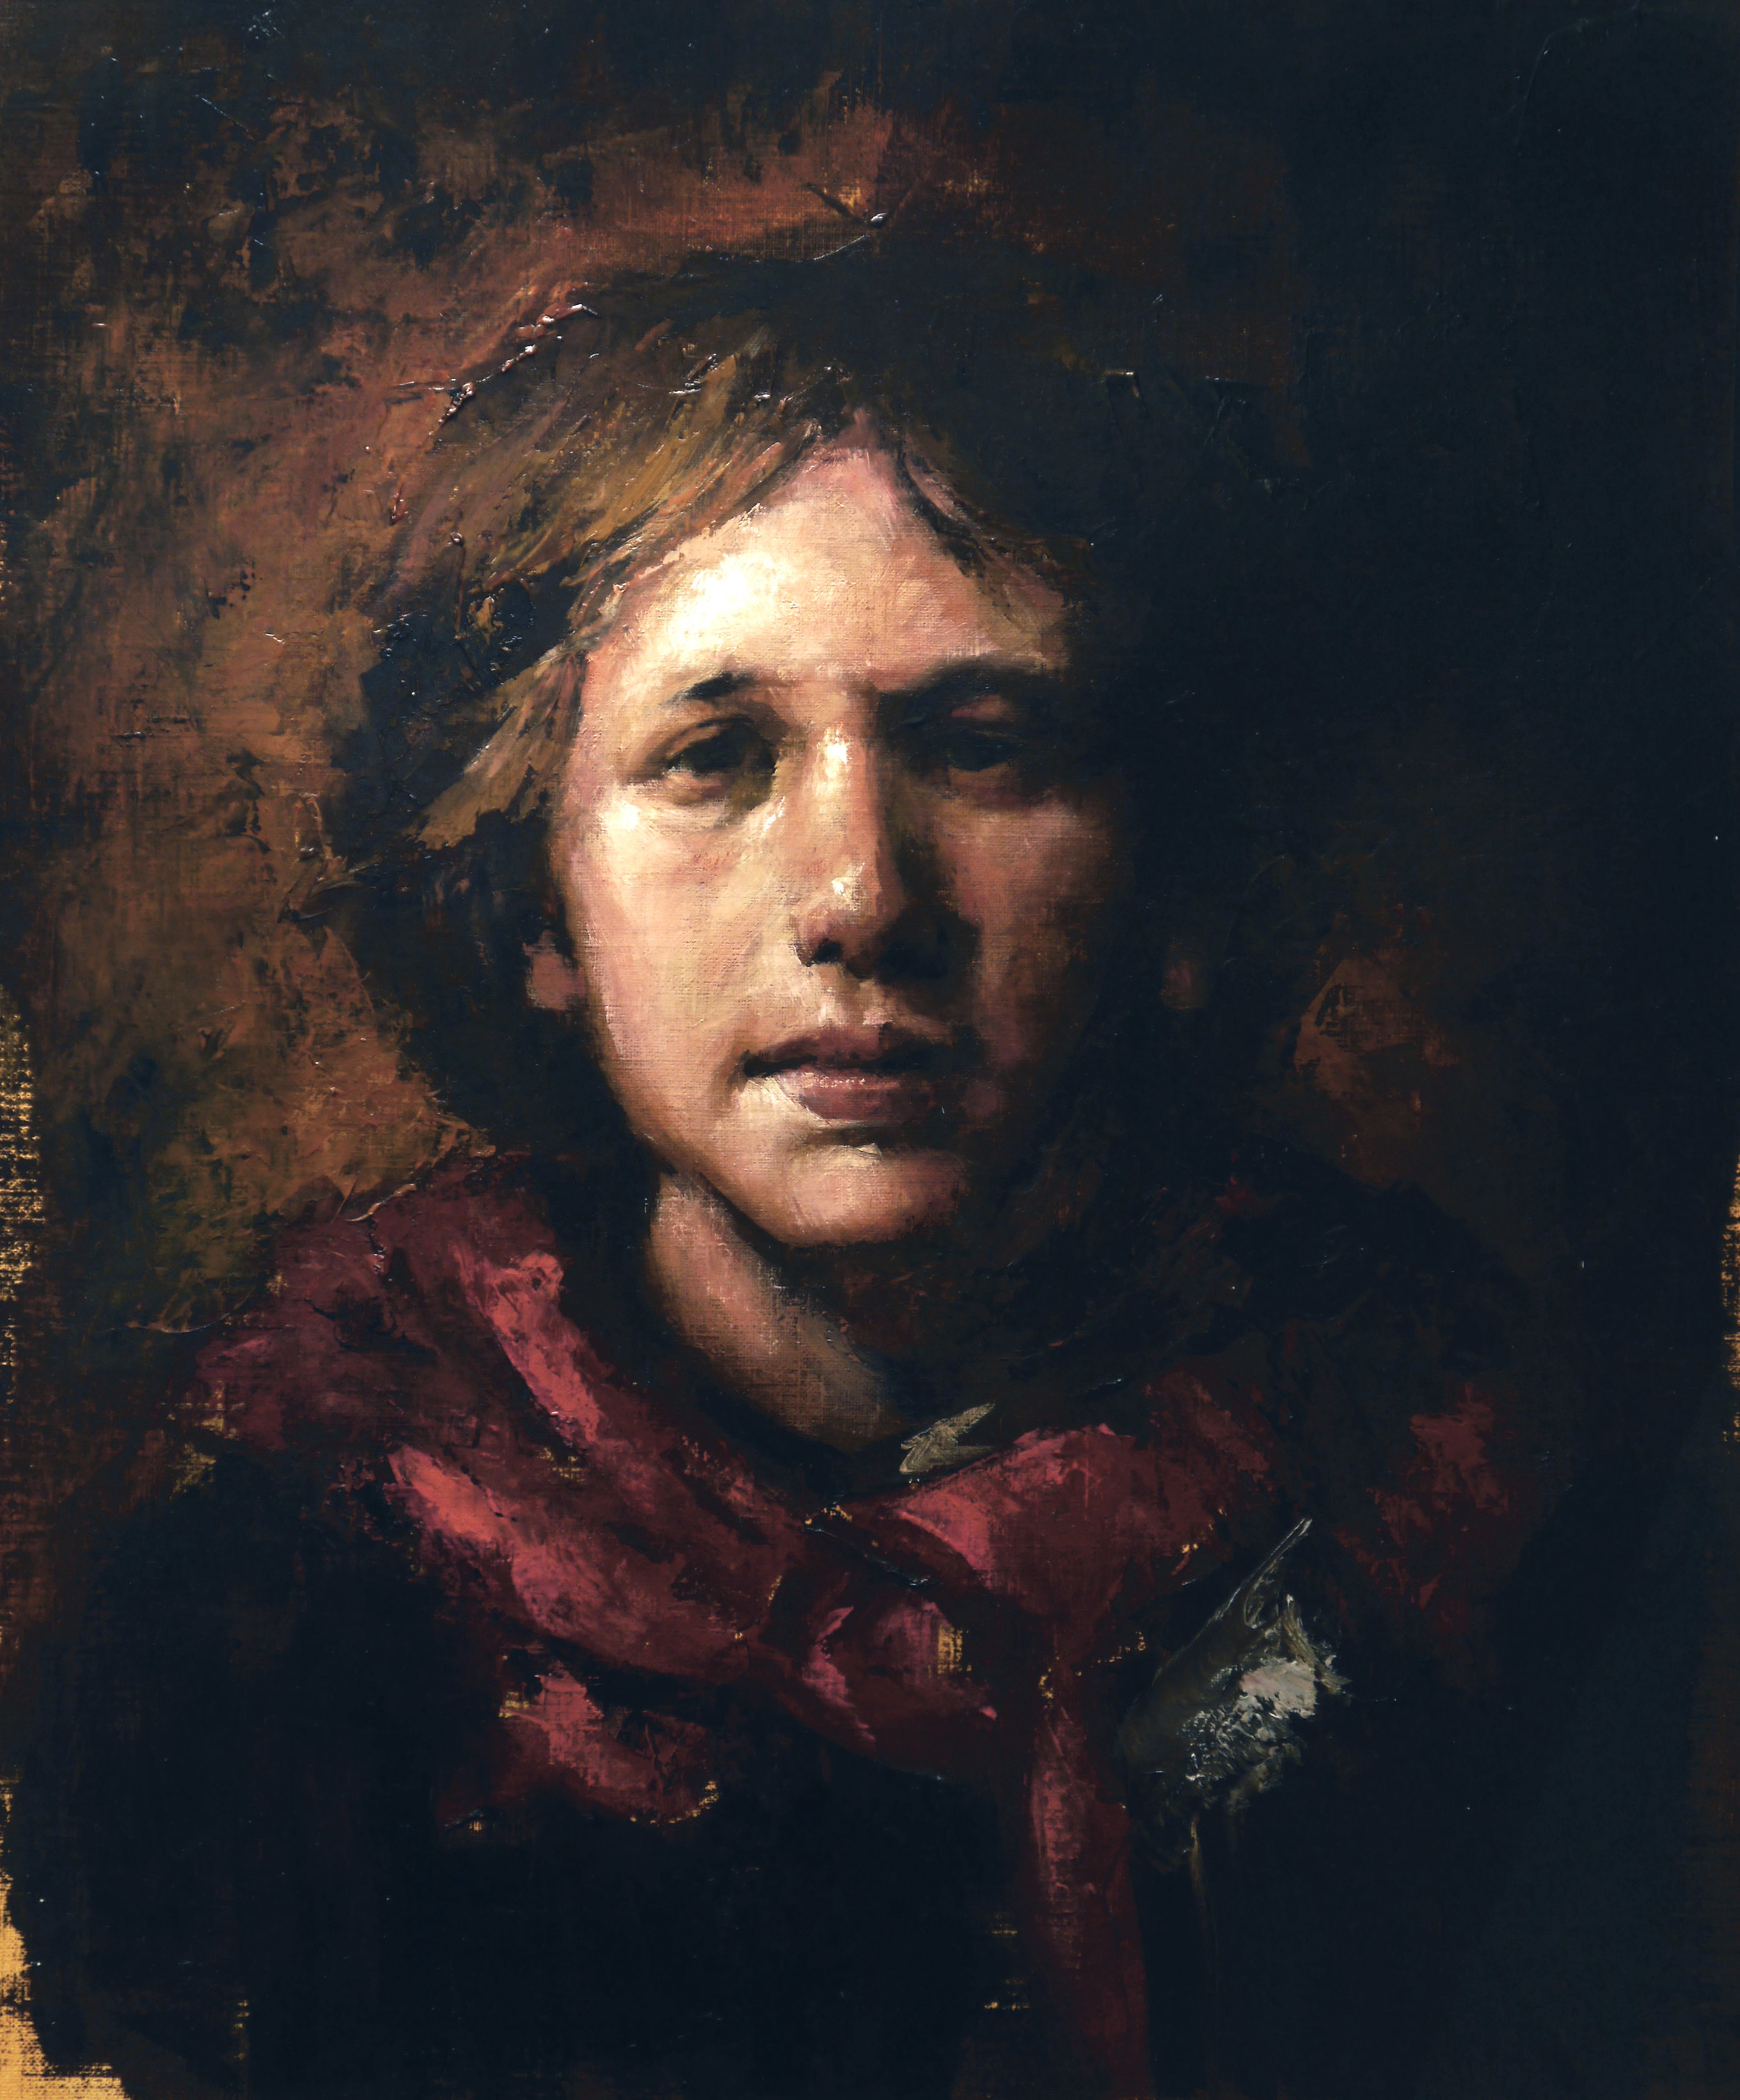 Copy of Odd Nerdrum Self-portrait